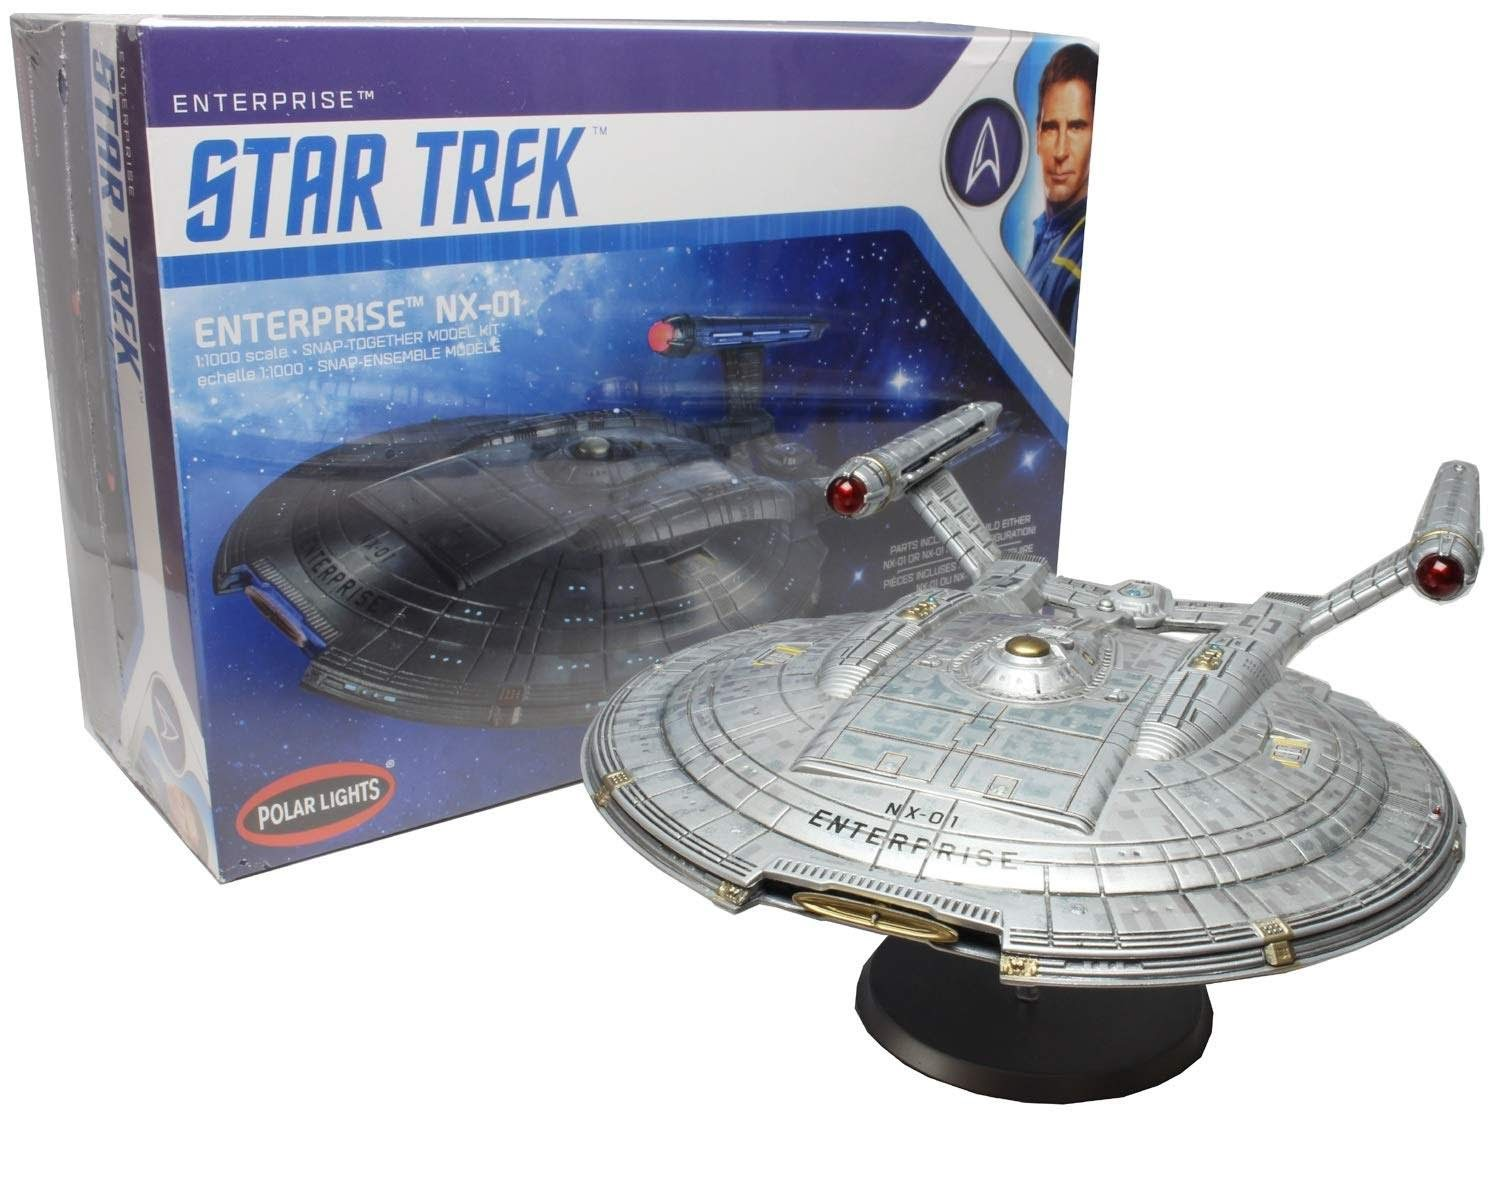 The Trek Collective: Round 2 Model's Discovery model kit